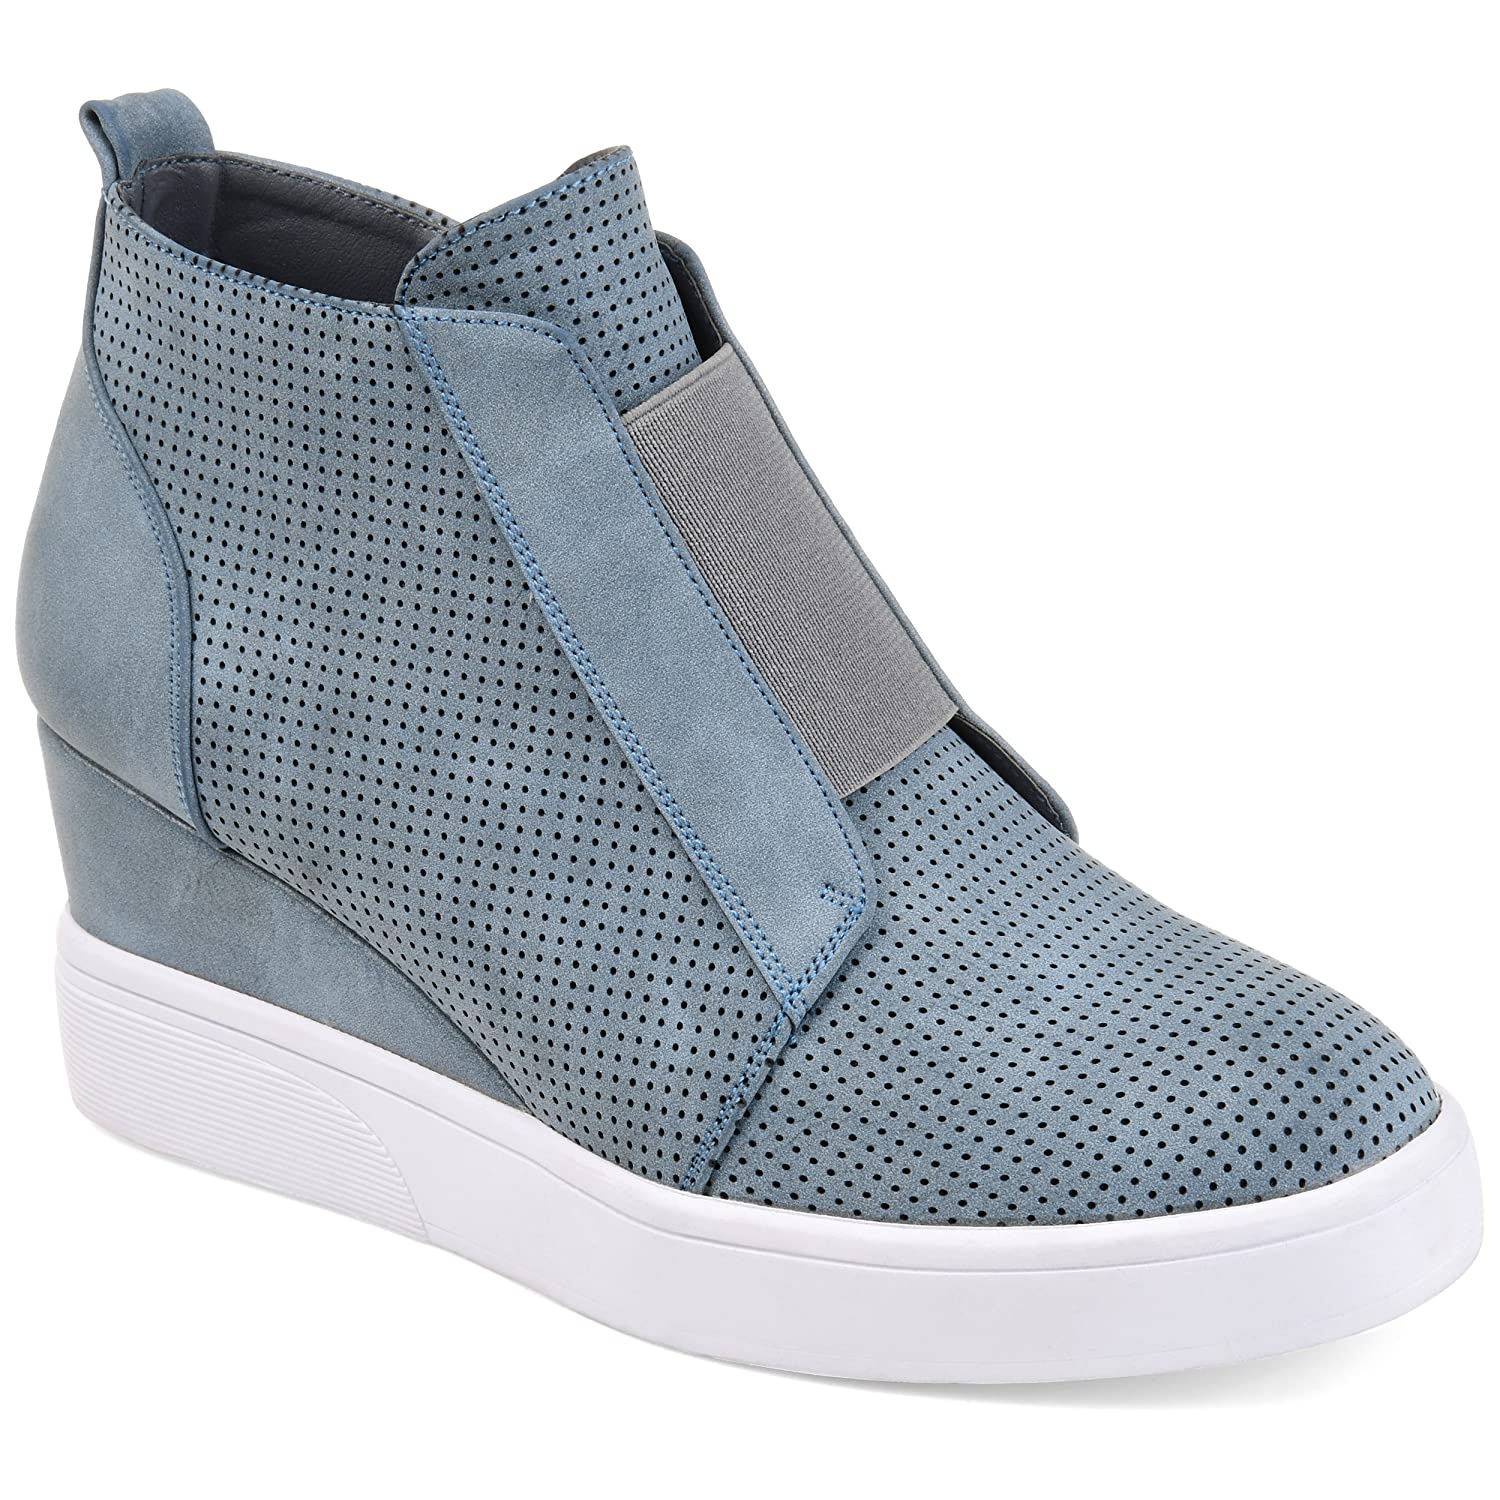 Journee Collection Womens Athleisure Laser-Cut Side-Zip Sneaker Wedges B07CBJ4M9S 10 B(M) US|Blue